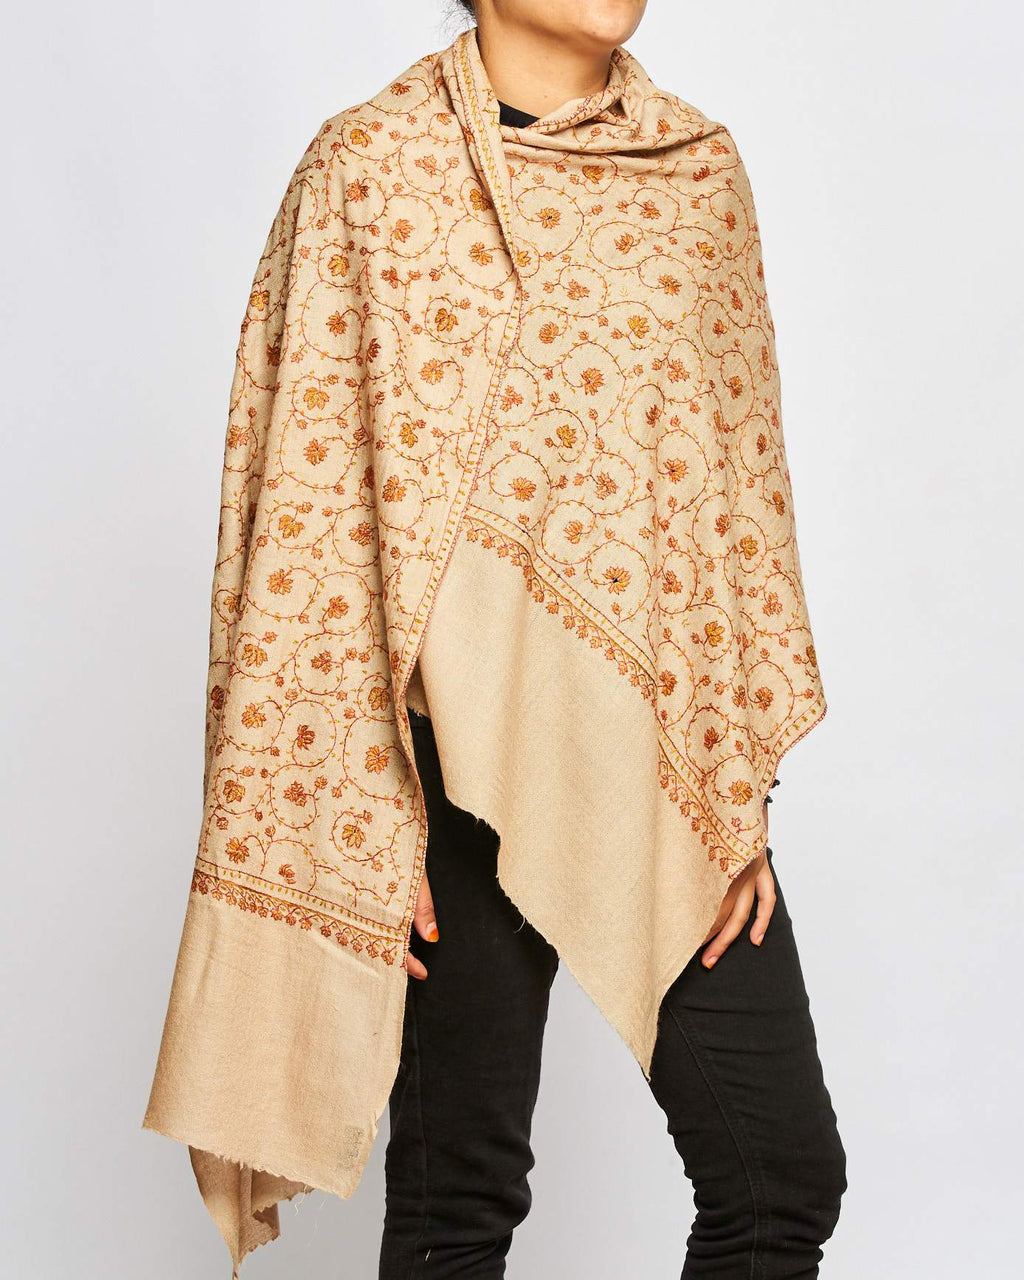 Cashmere Hand Embroidered Scarf - Beige/Orange